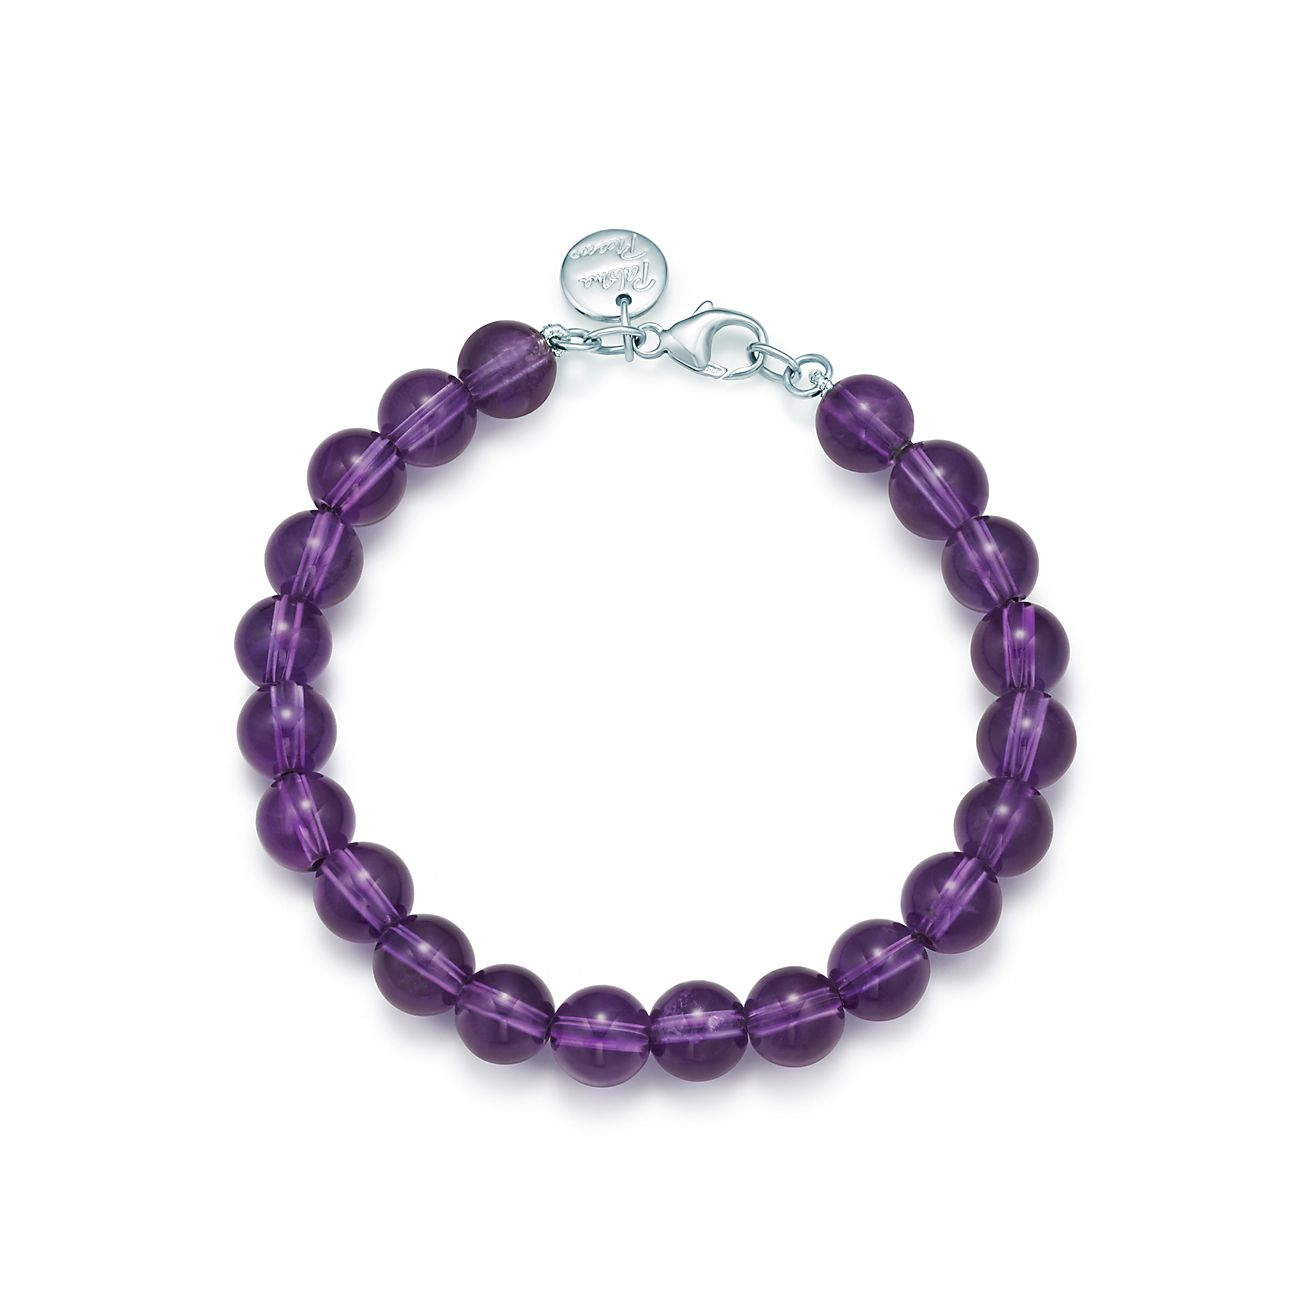 picasso 174 bead bracelet in amethyst with sterling